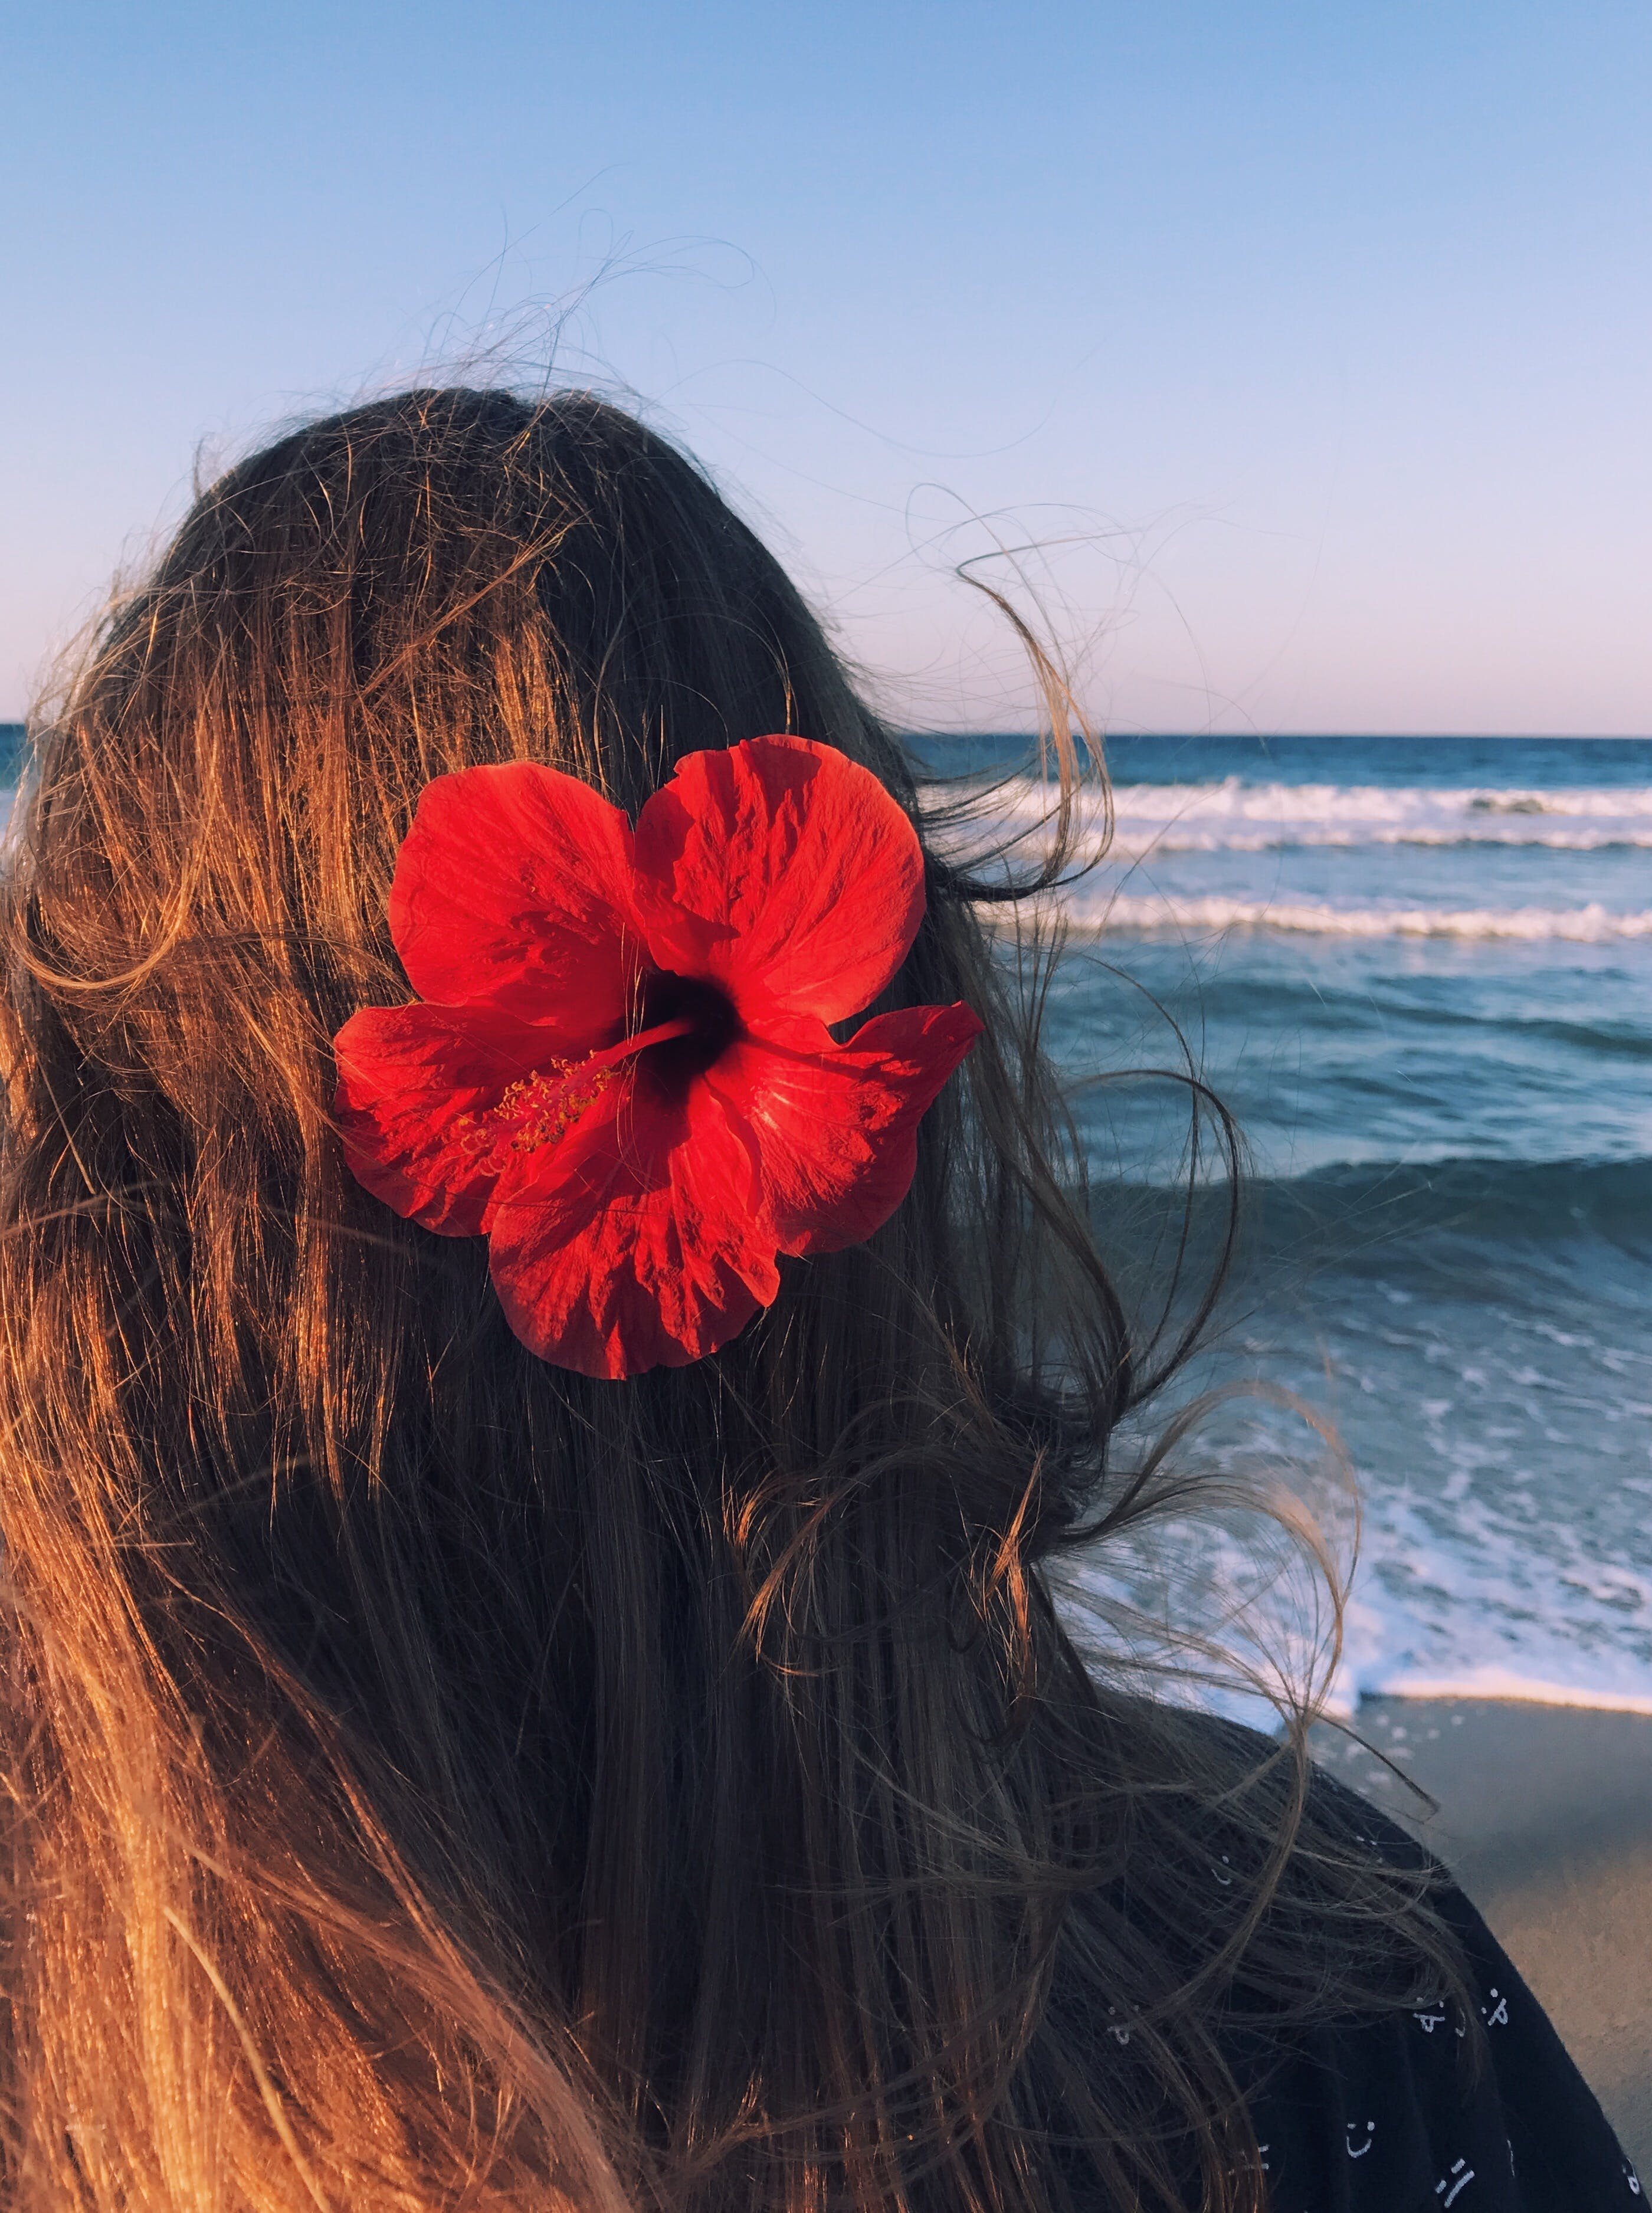 Photo of a Woman With Hibiscus on Her Head Facing Towards the Sea